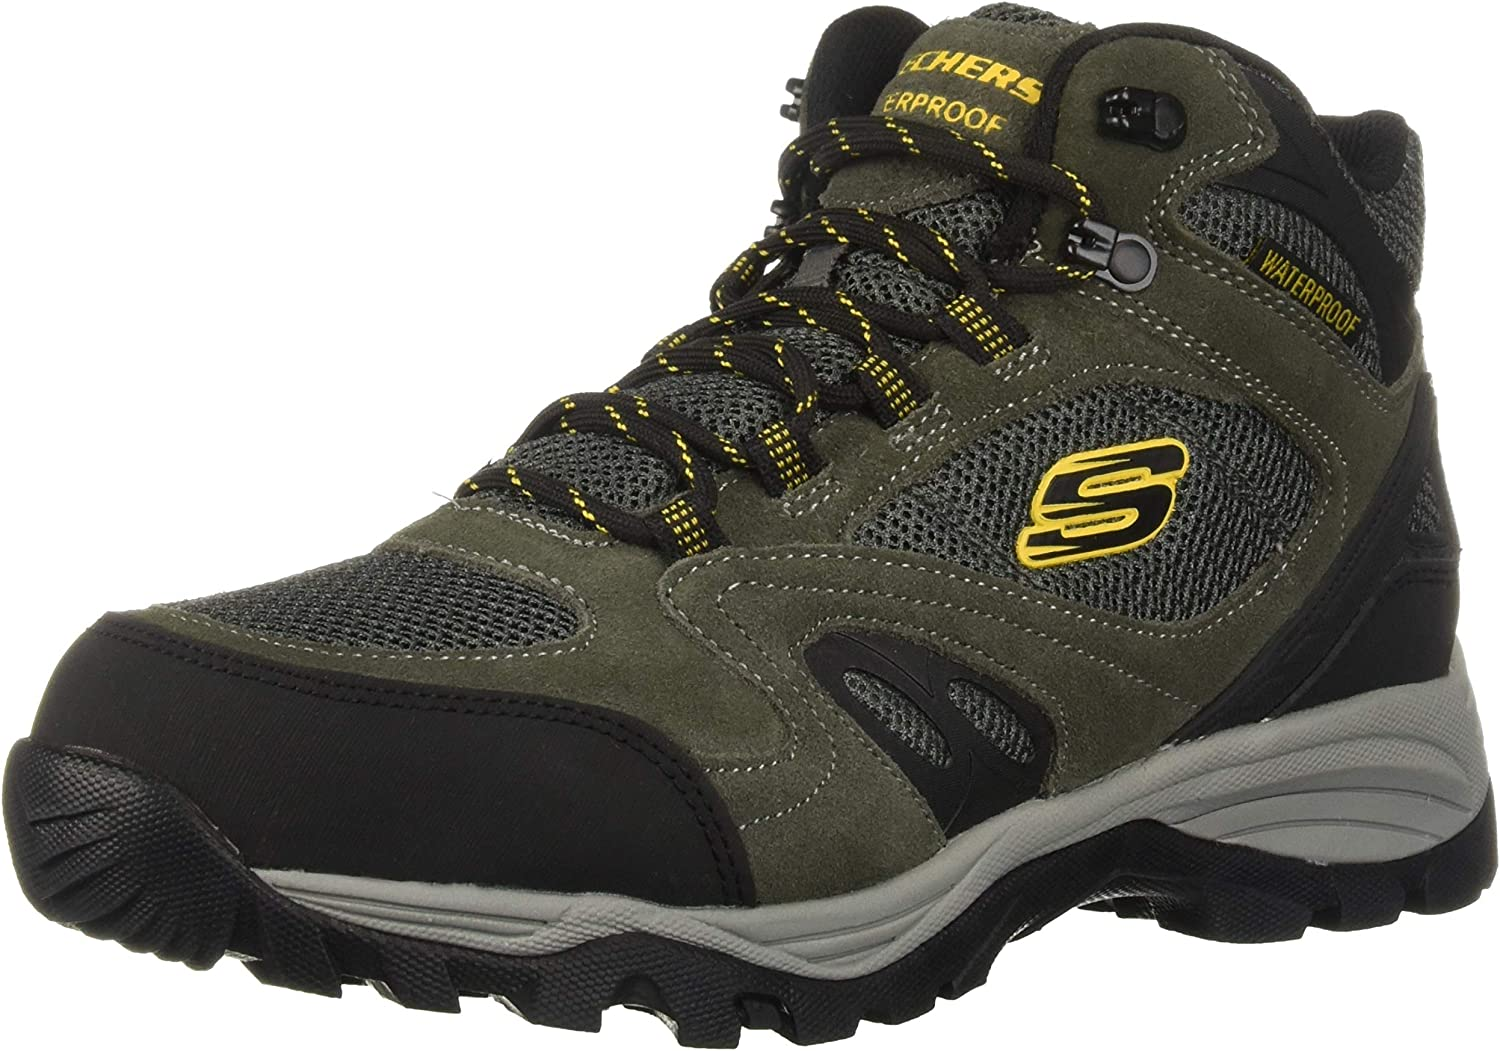 Skechers Men's ROLTON -ELERO Hiking Boot, Charcoal, 9.5 Medium US